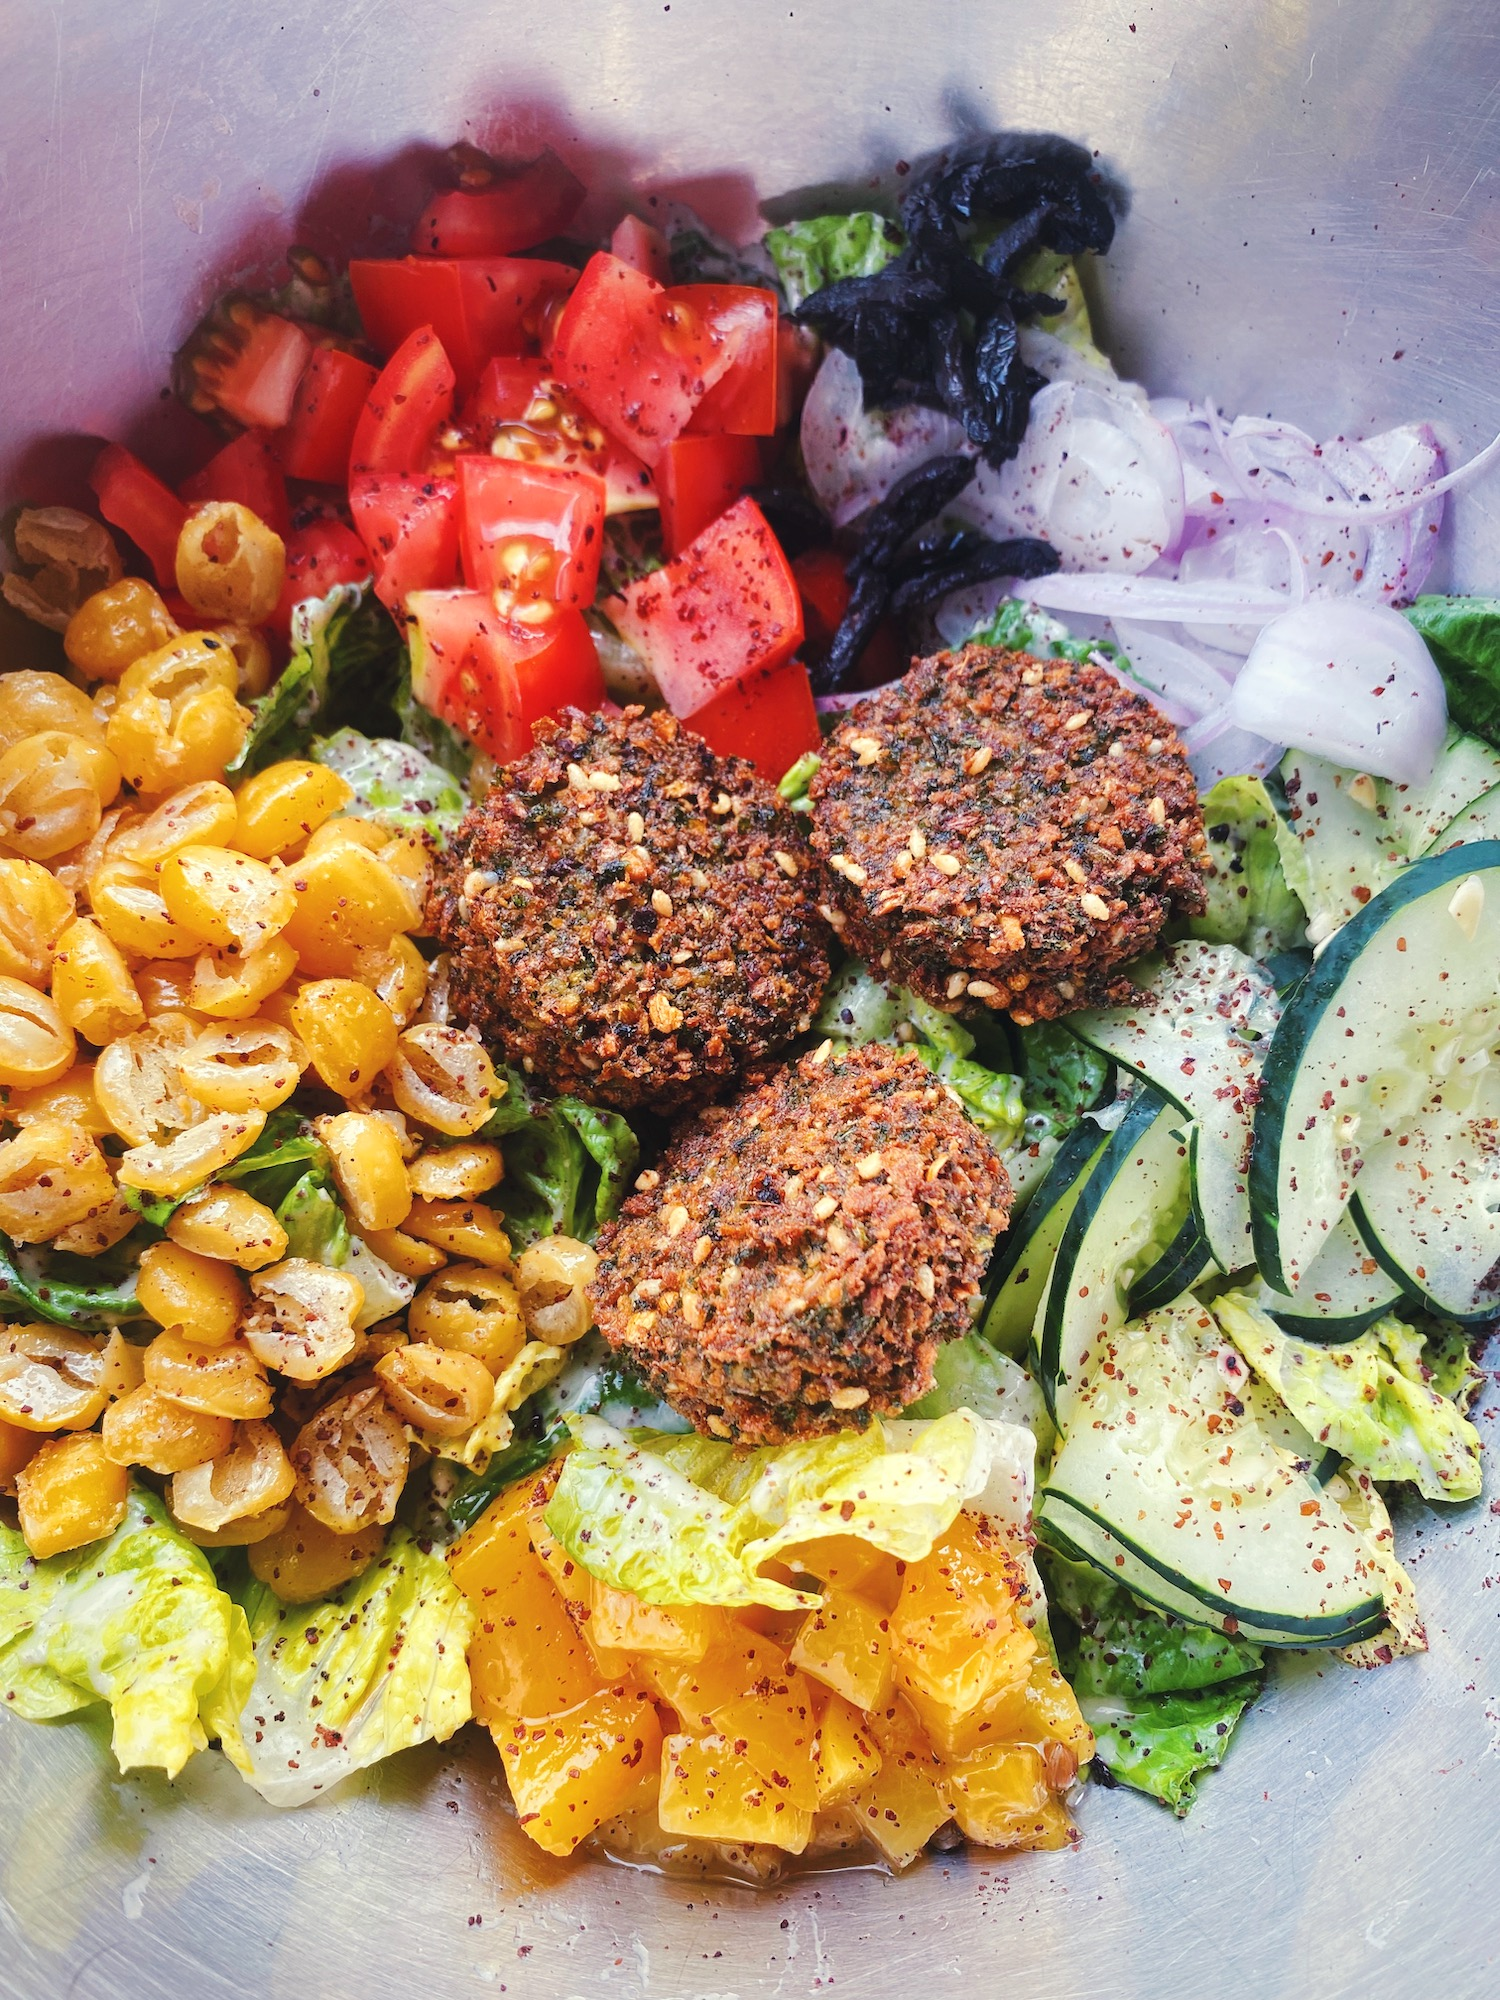 The challenge for Gang Green Falafels was how to evolve their salads